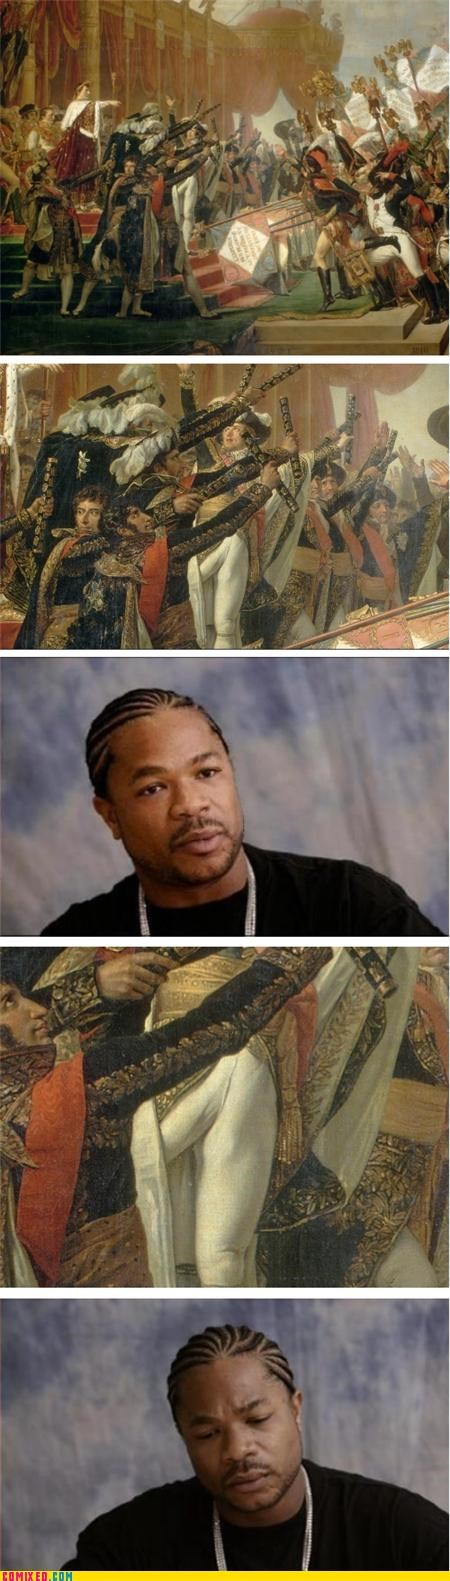 art boners history paintings Tenso Xzibit - 4418176256